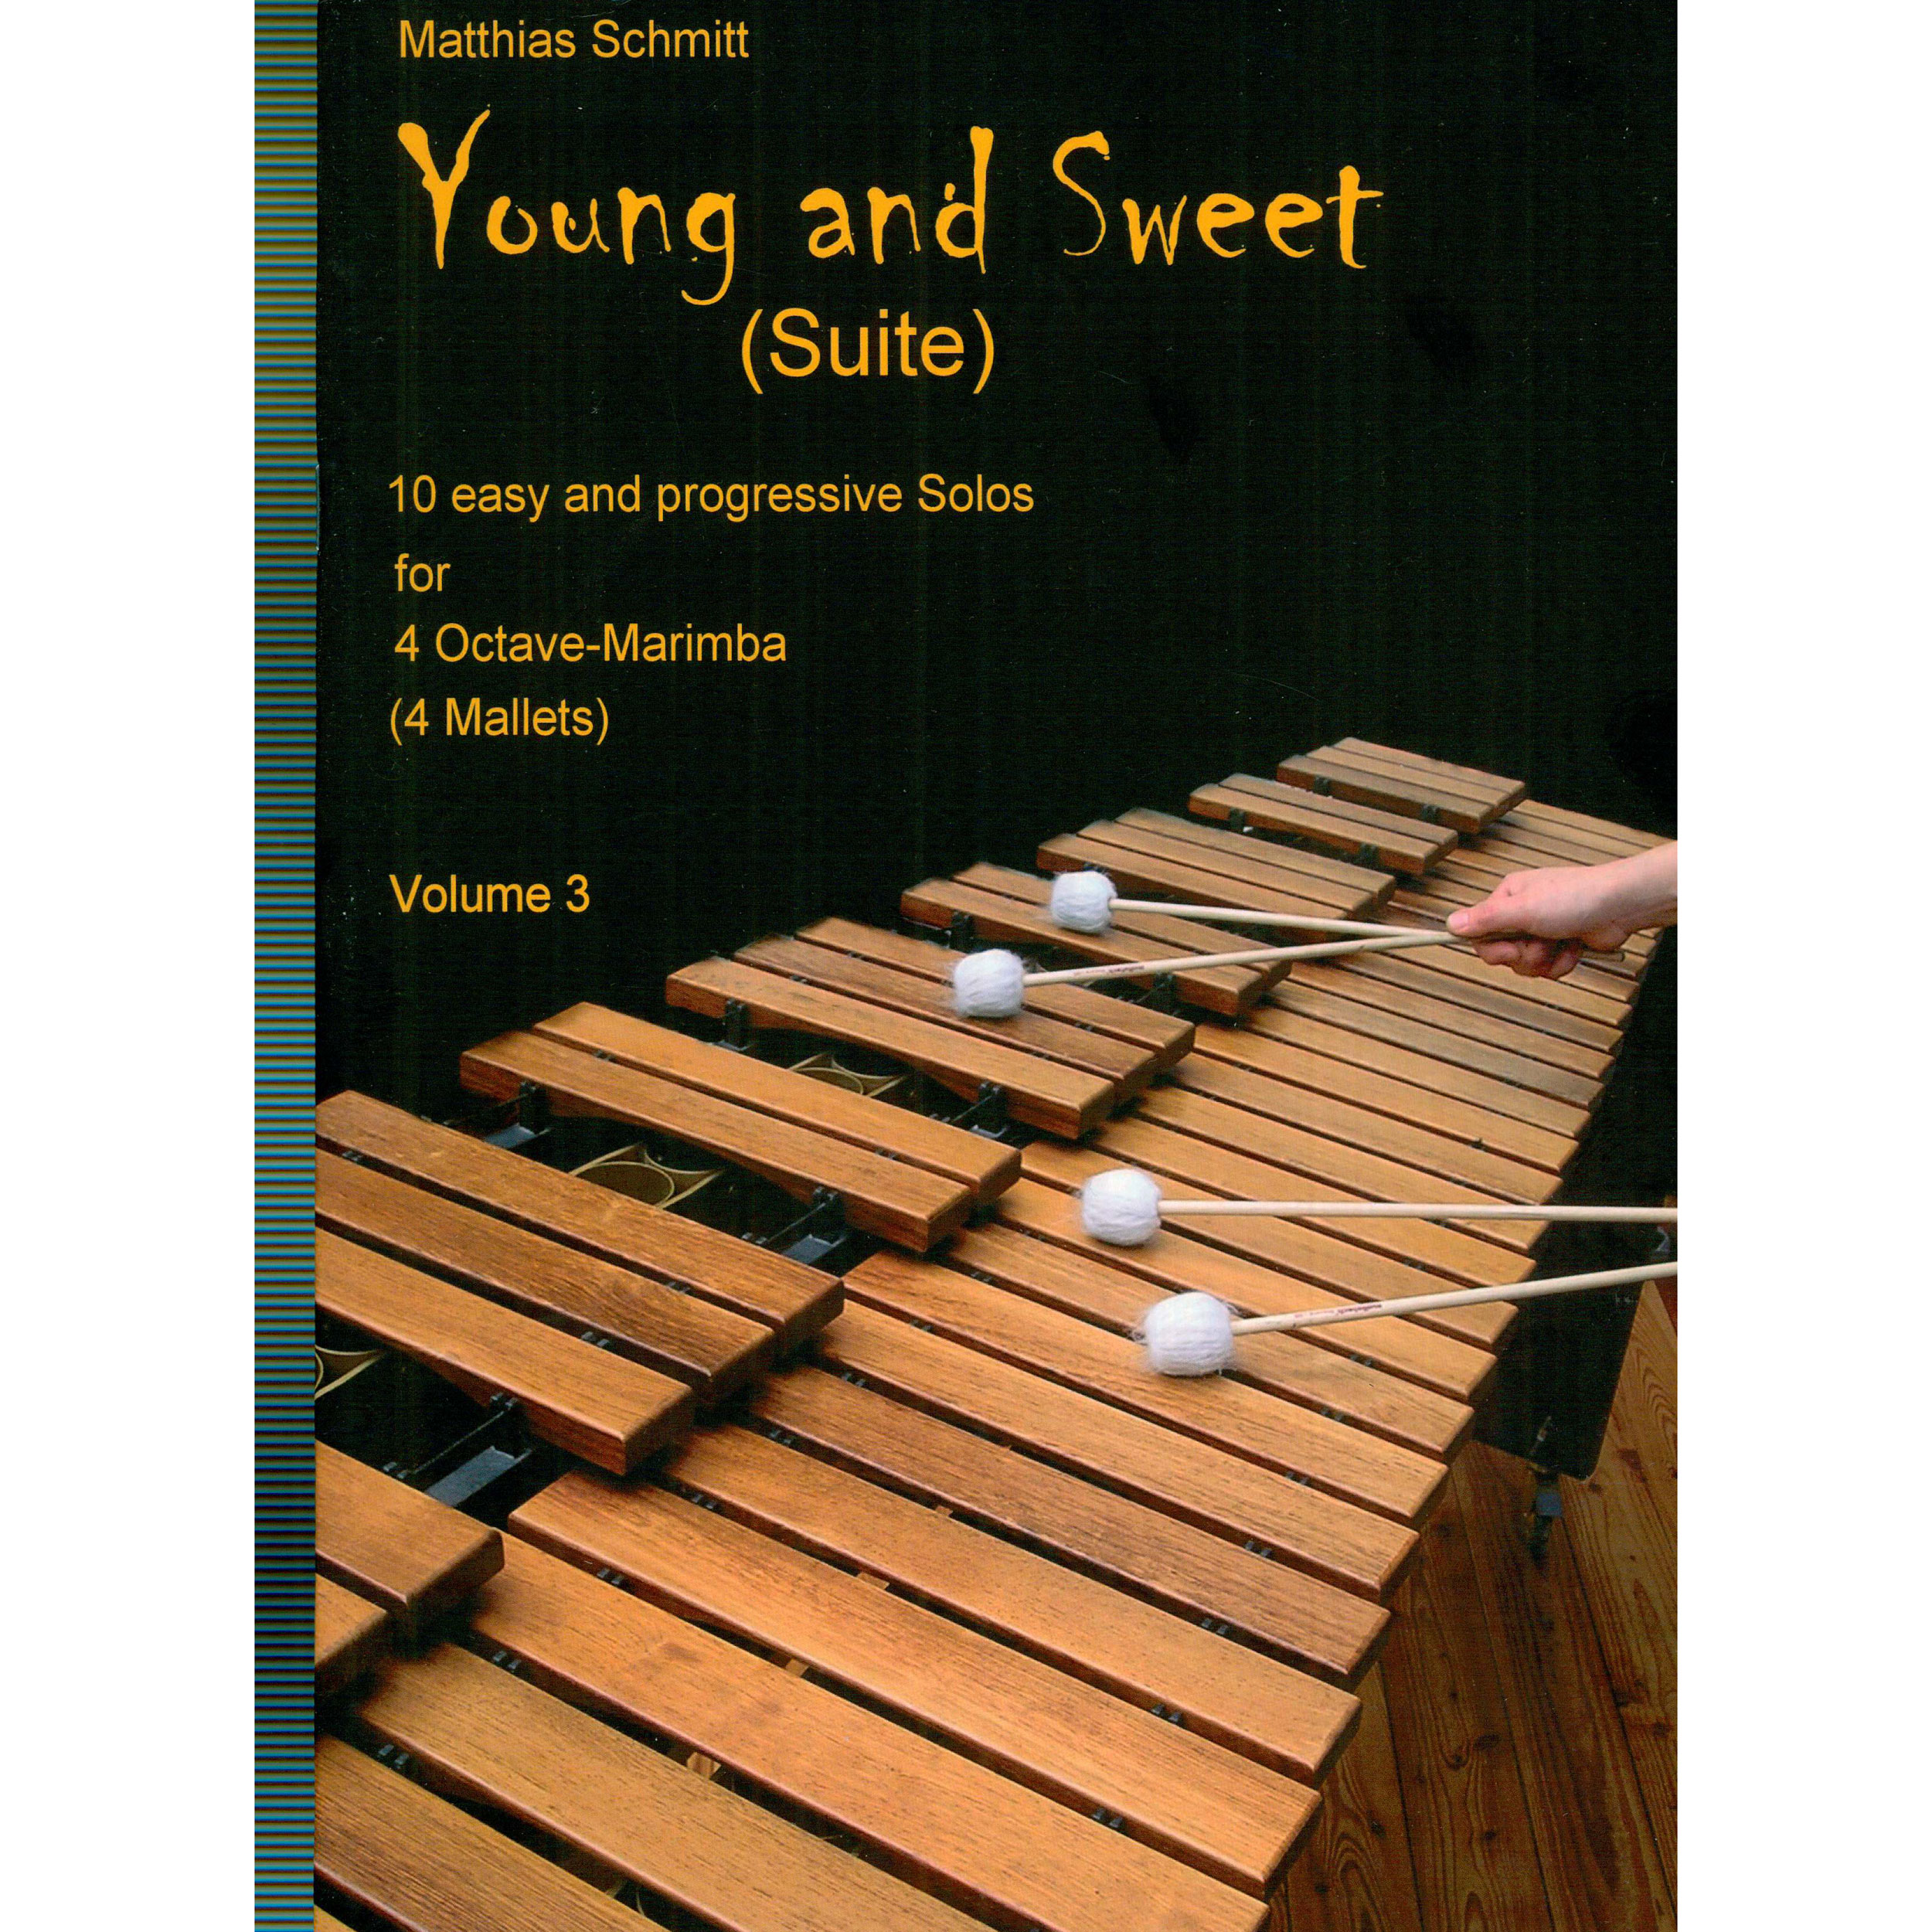 Young and Sweet (Suite), vol. 3 by Matthias Schmitt